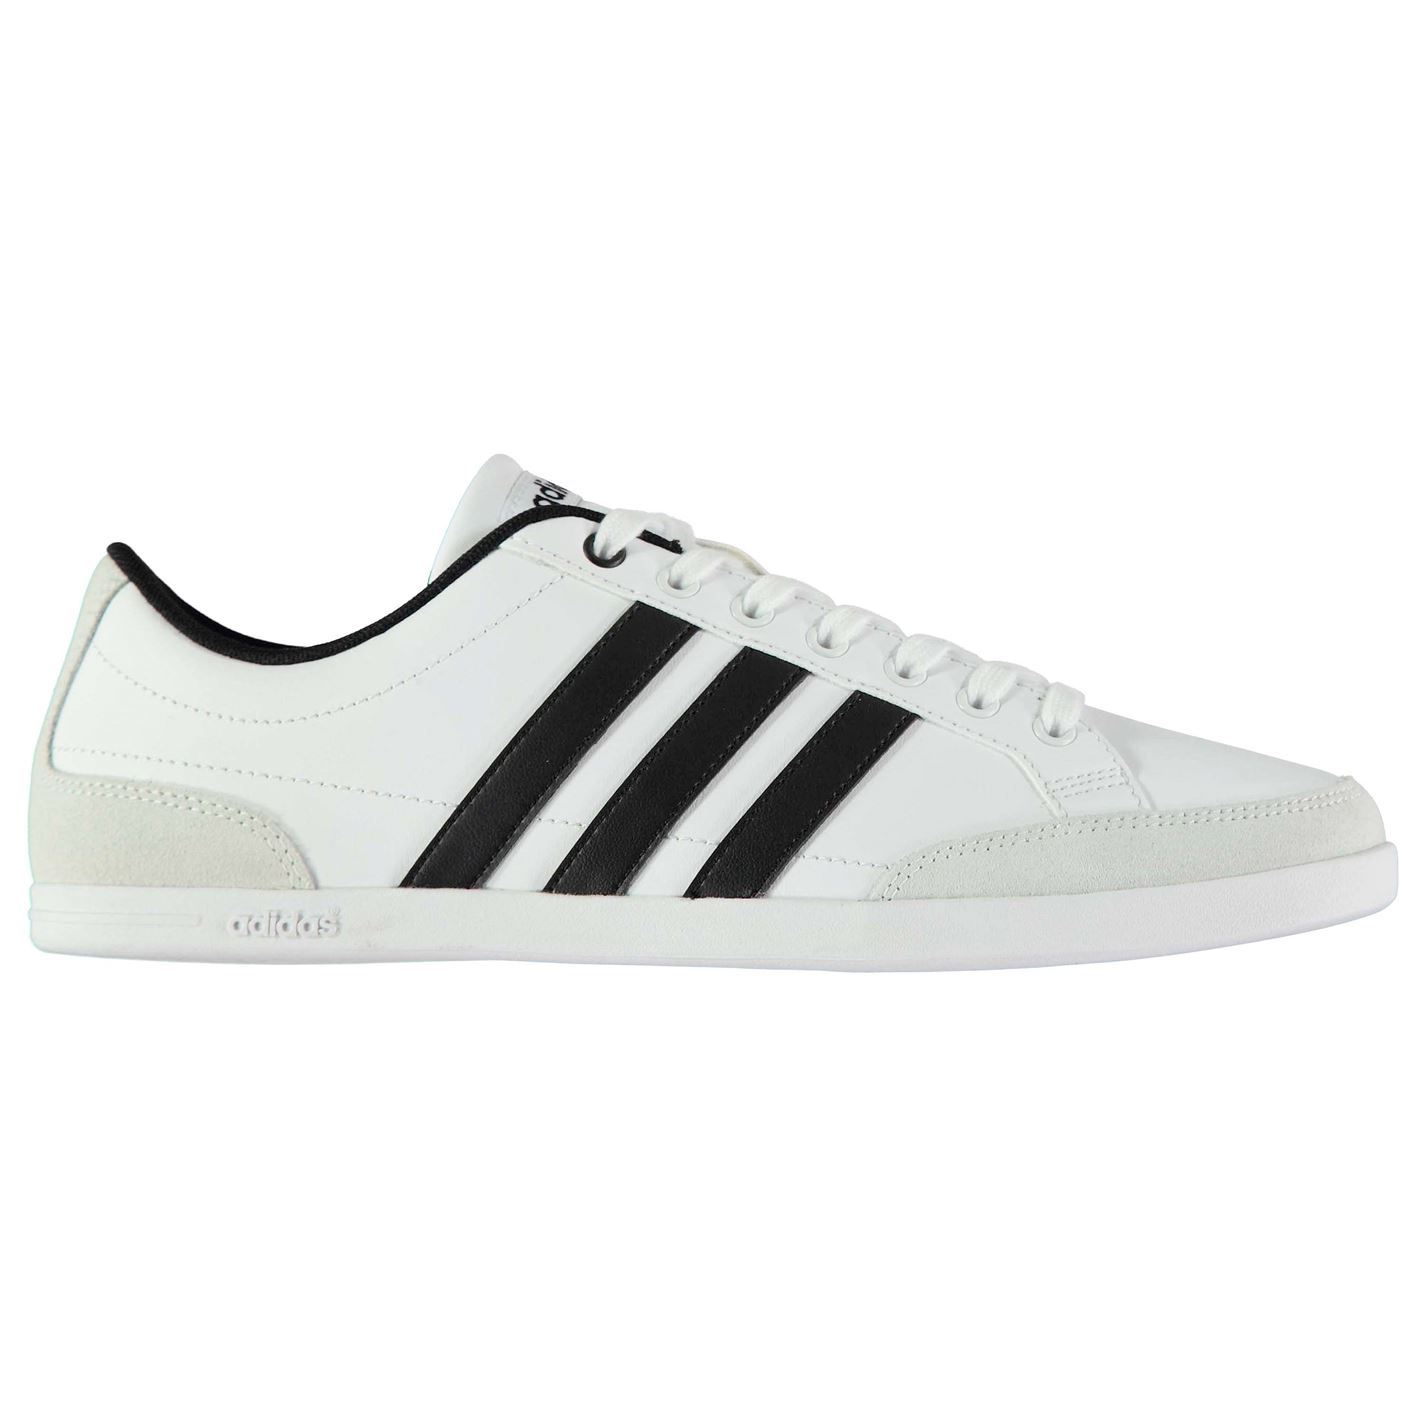 Adidas  Trainers Uomo Gents Caflaire Leder Trainers  Schuhes Laces Fastened Ankle Collar 68757c